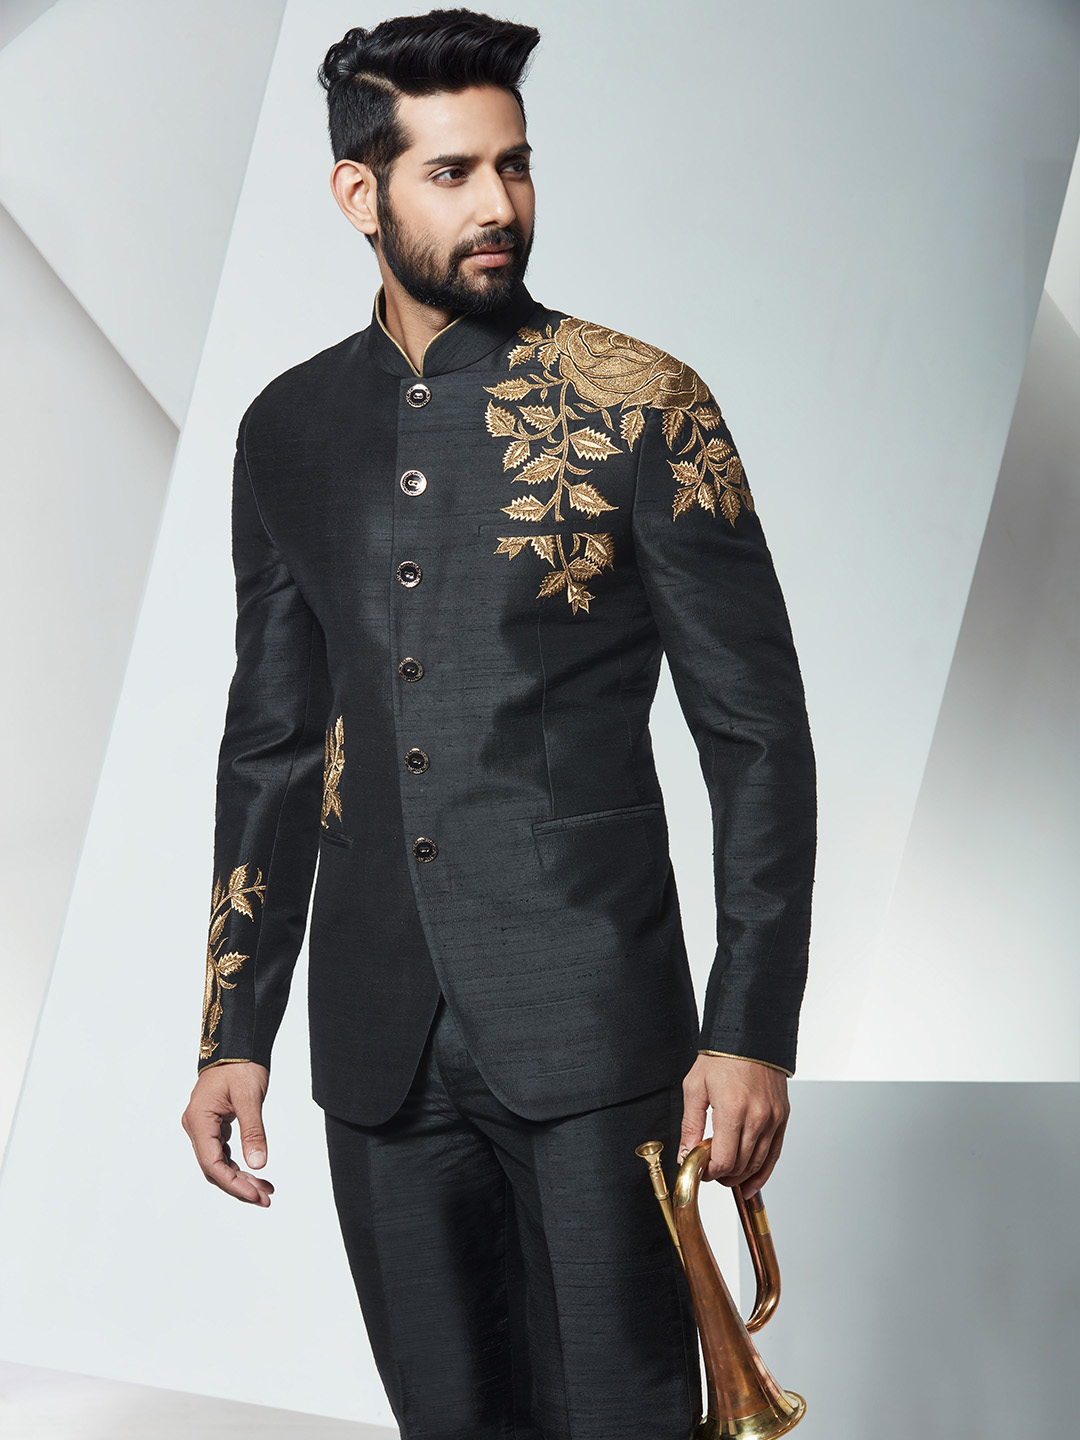 Silk black wedding wear jodhpuri suit - G3-MCO0742 | G3fashion.com